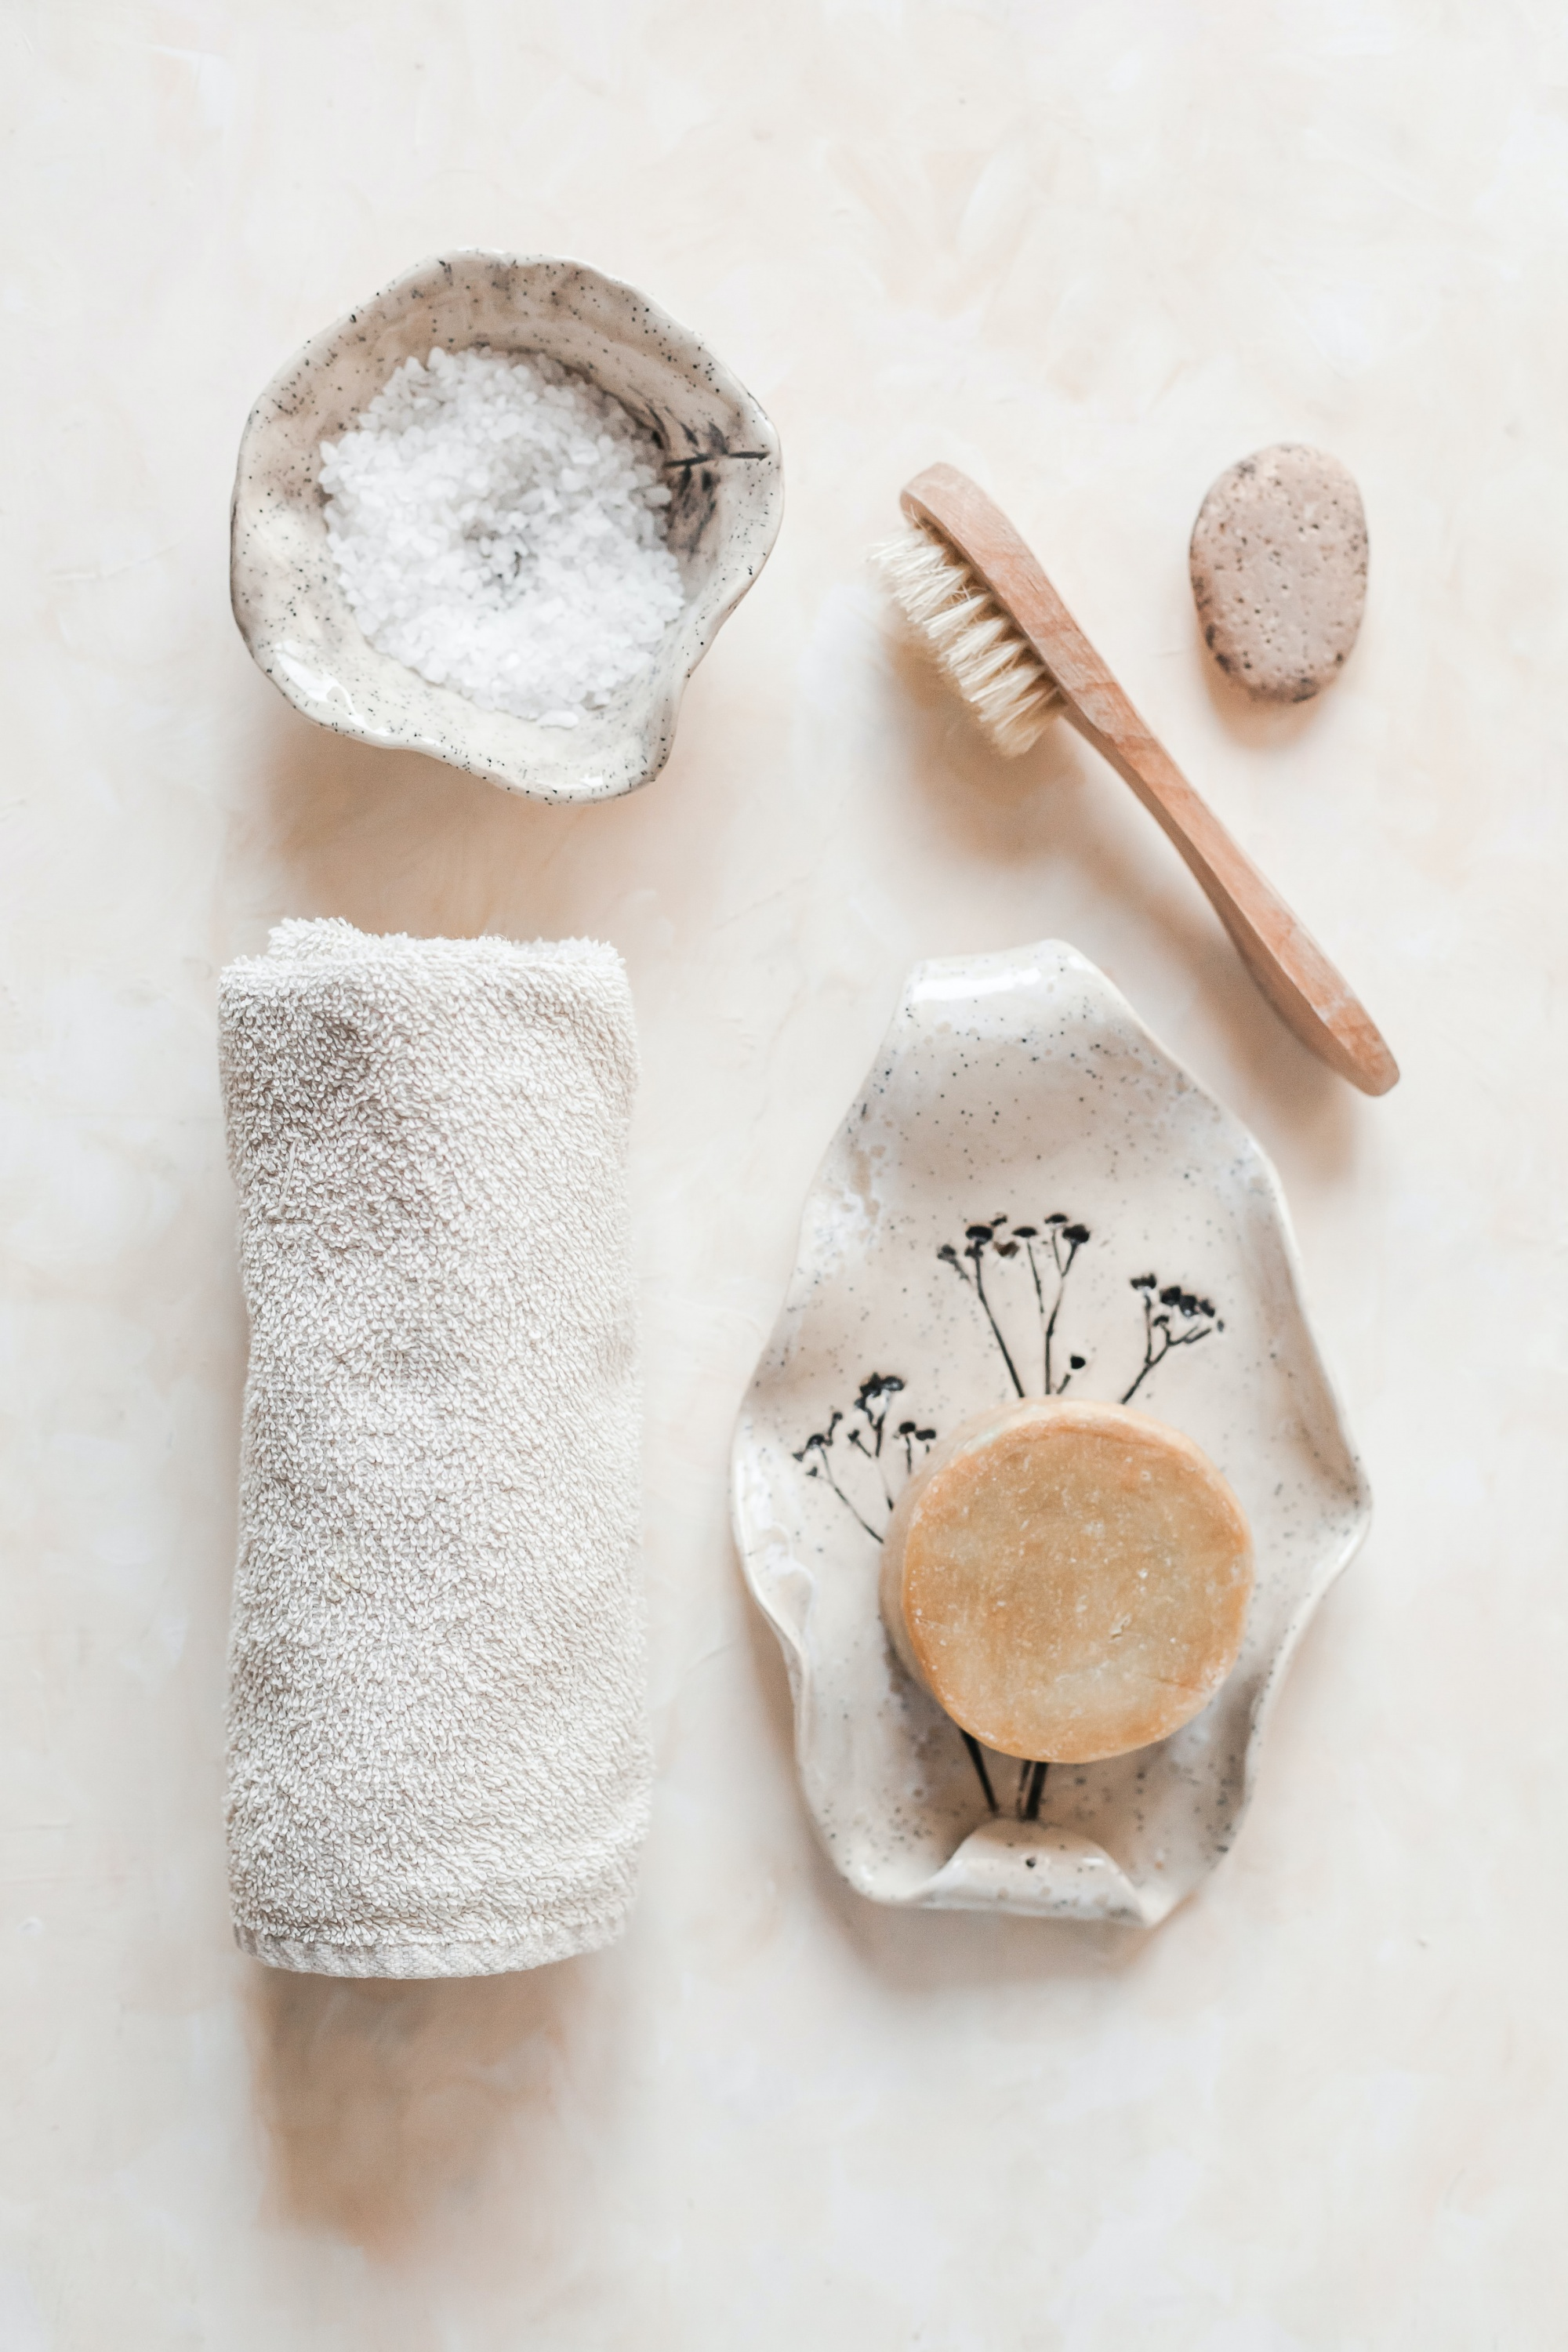 How To Exfoliate Over 40, sharing how to exfoliate your skin as a woman over 40 and why it's important including physical exfoliate